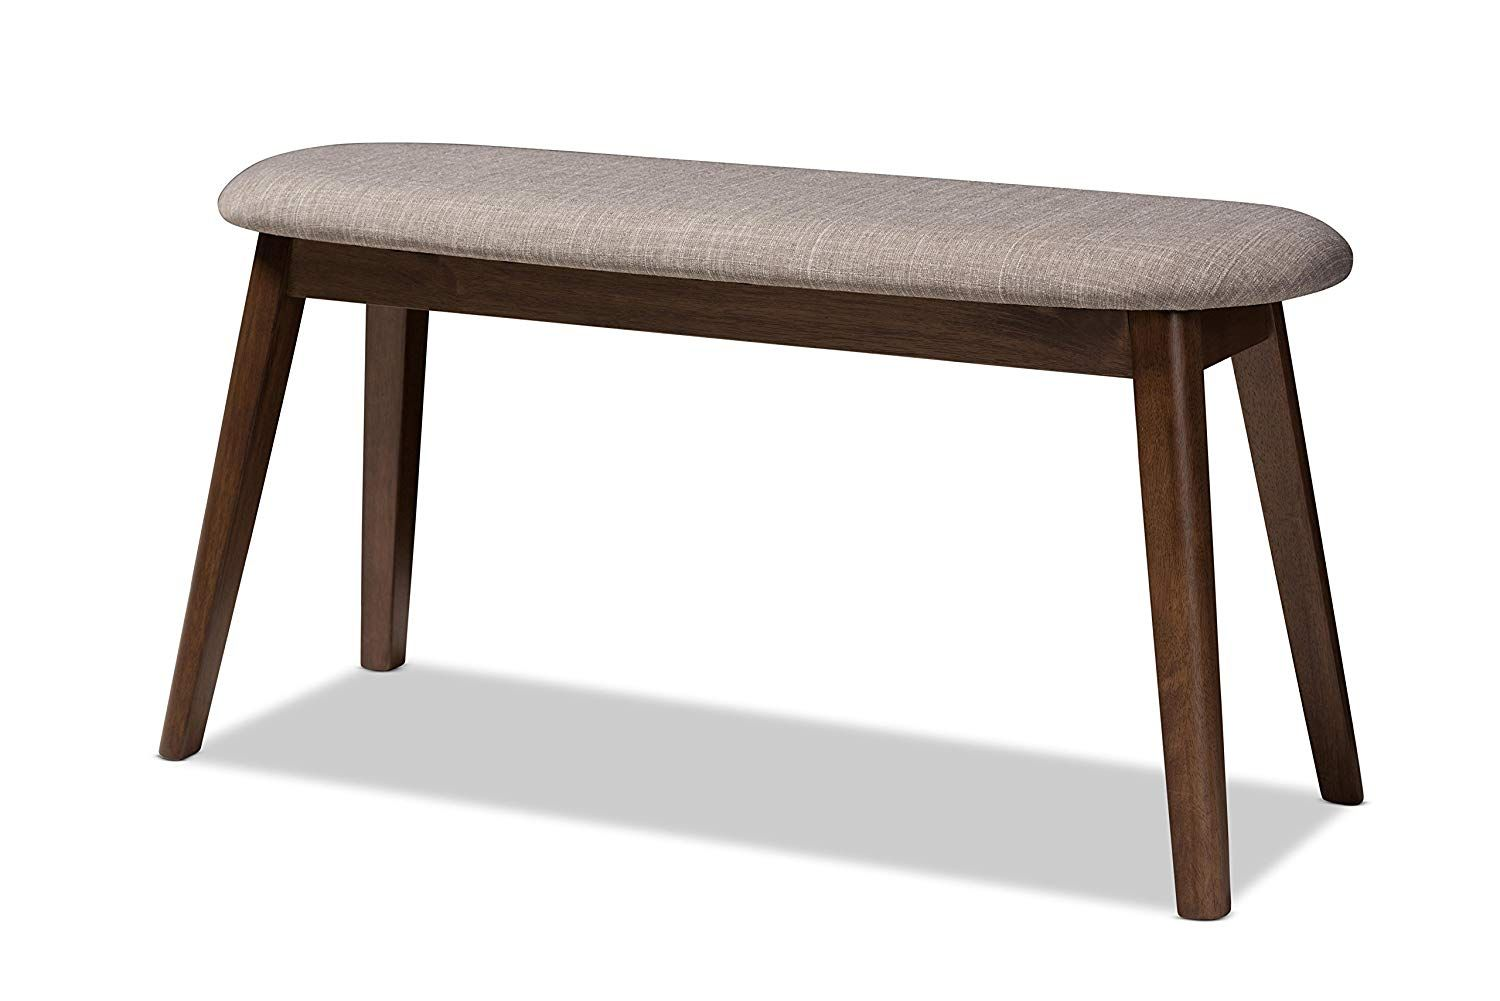 Baxton Studio 144 424 7939 Amz Ambrelle Bench Light Grey Walnut Brown With Images Traditional Benches Wood Bench Contemporary Bench